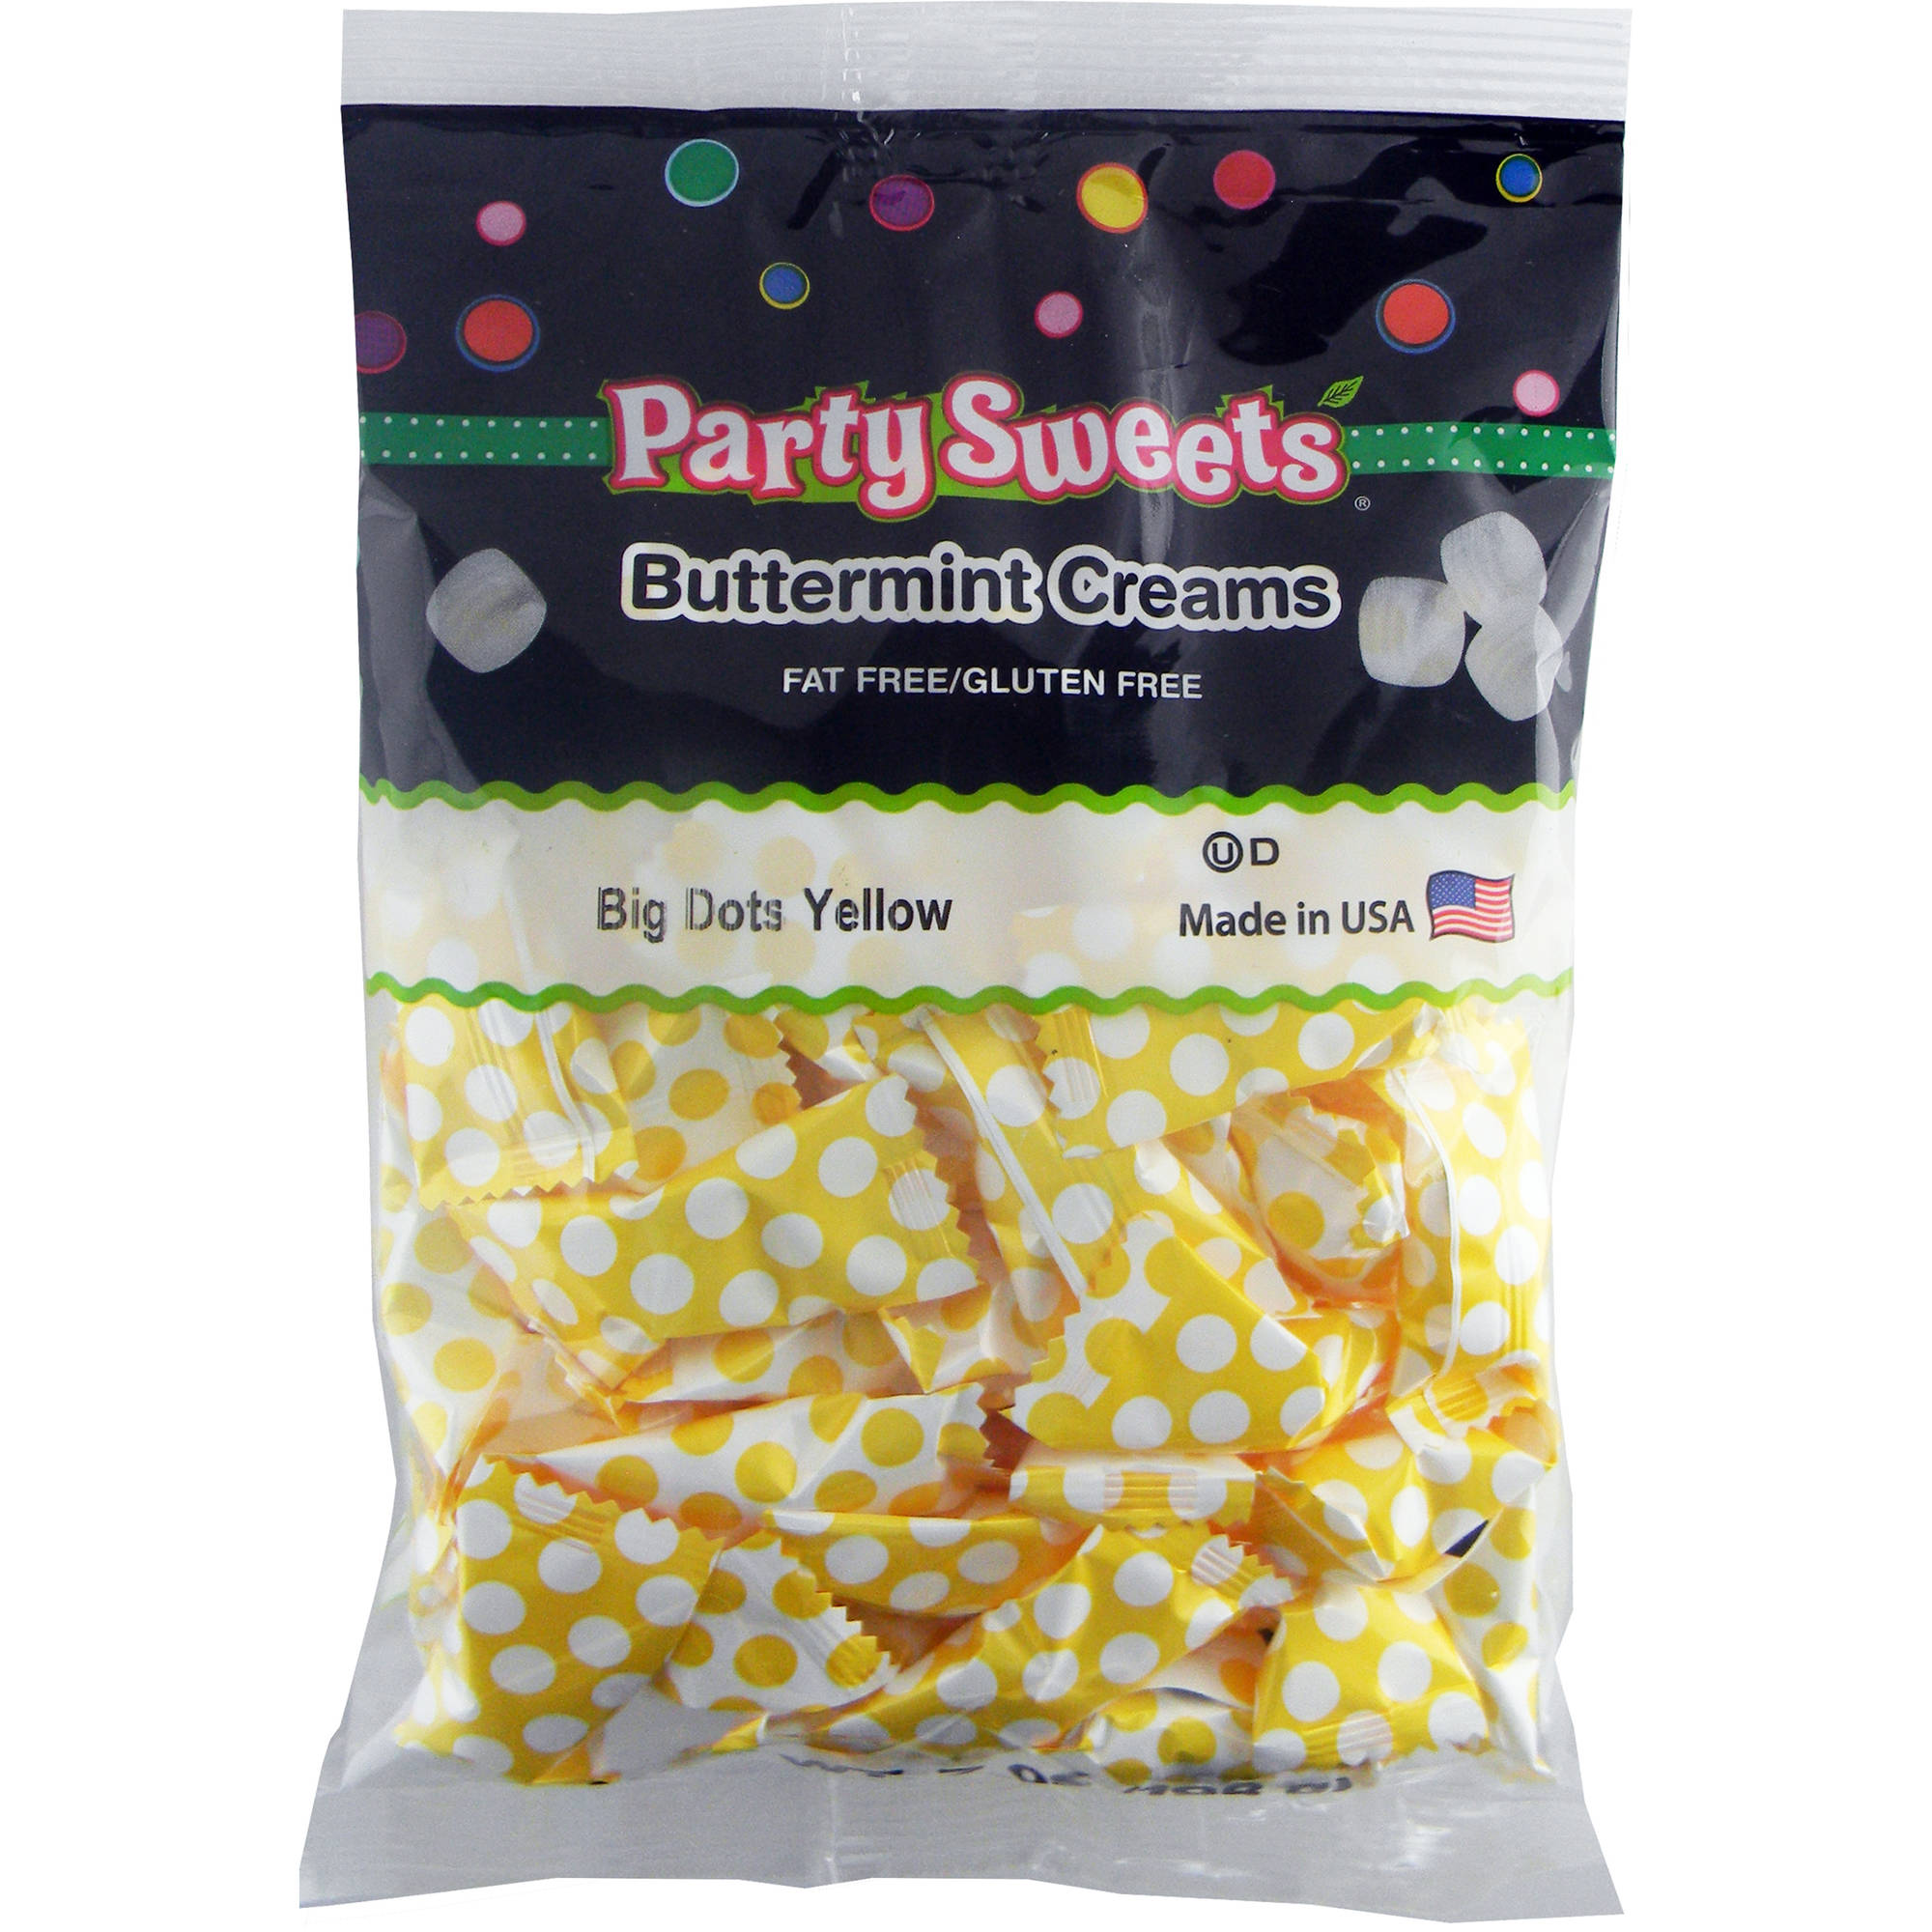 Party Sweets Big Dots Yellow Buttermint Creams Candy, 7 oz